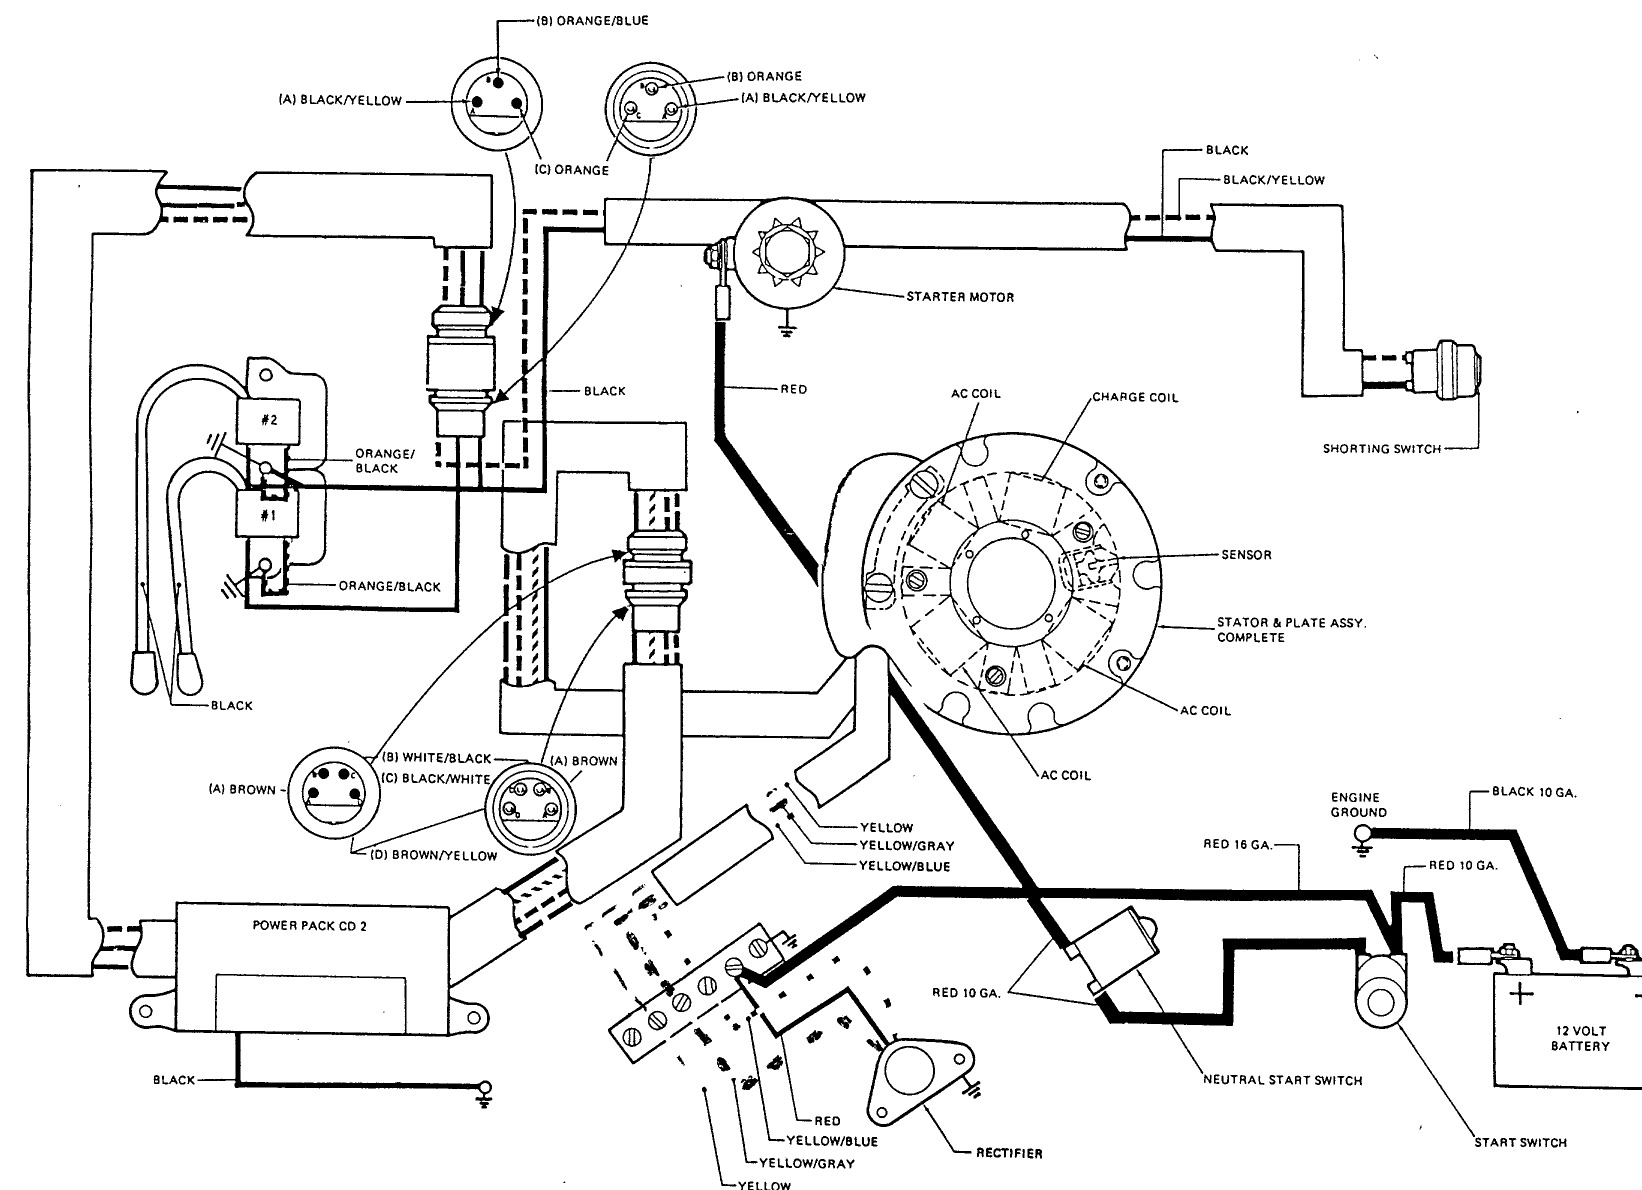 1979 Glastron Omc Ignition Switch Wiring Diagram - Free Wiring ... on glastron accessories, port side of boat diagram, glastron parts, mercruiser 4.3 engine diagram, volvo penta sx outdrive diagram,